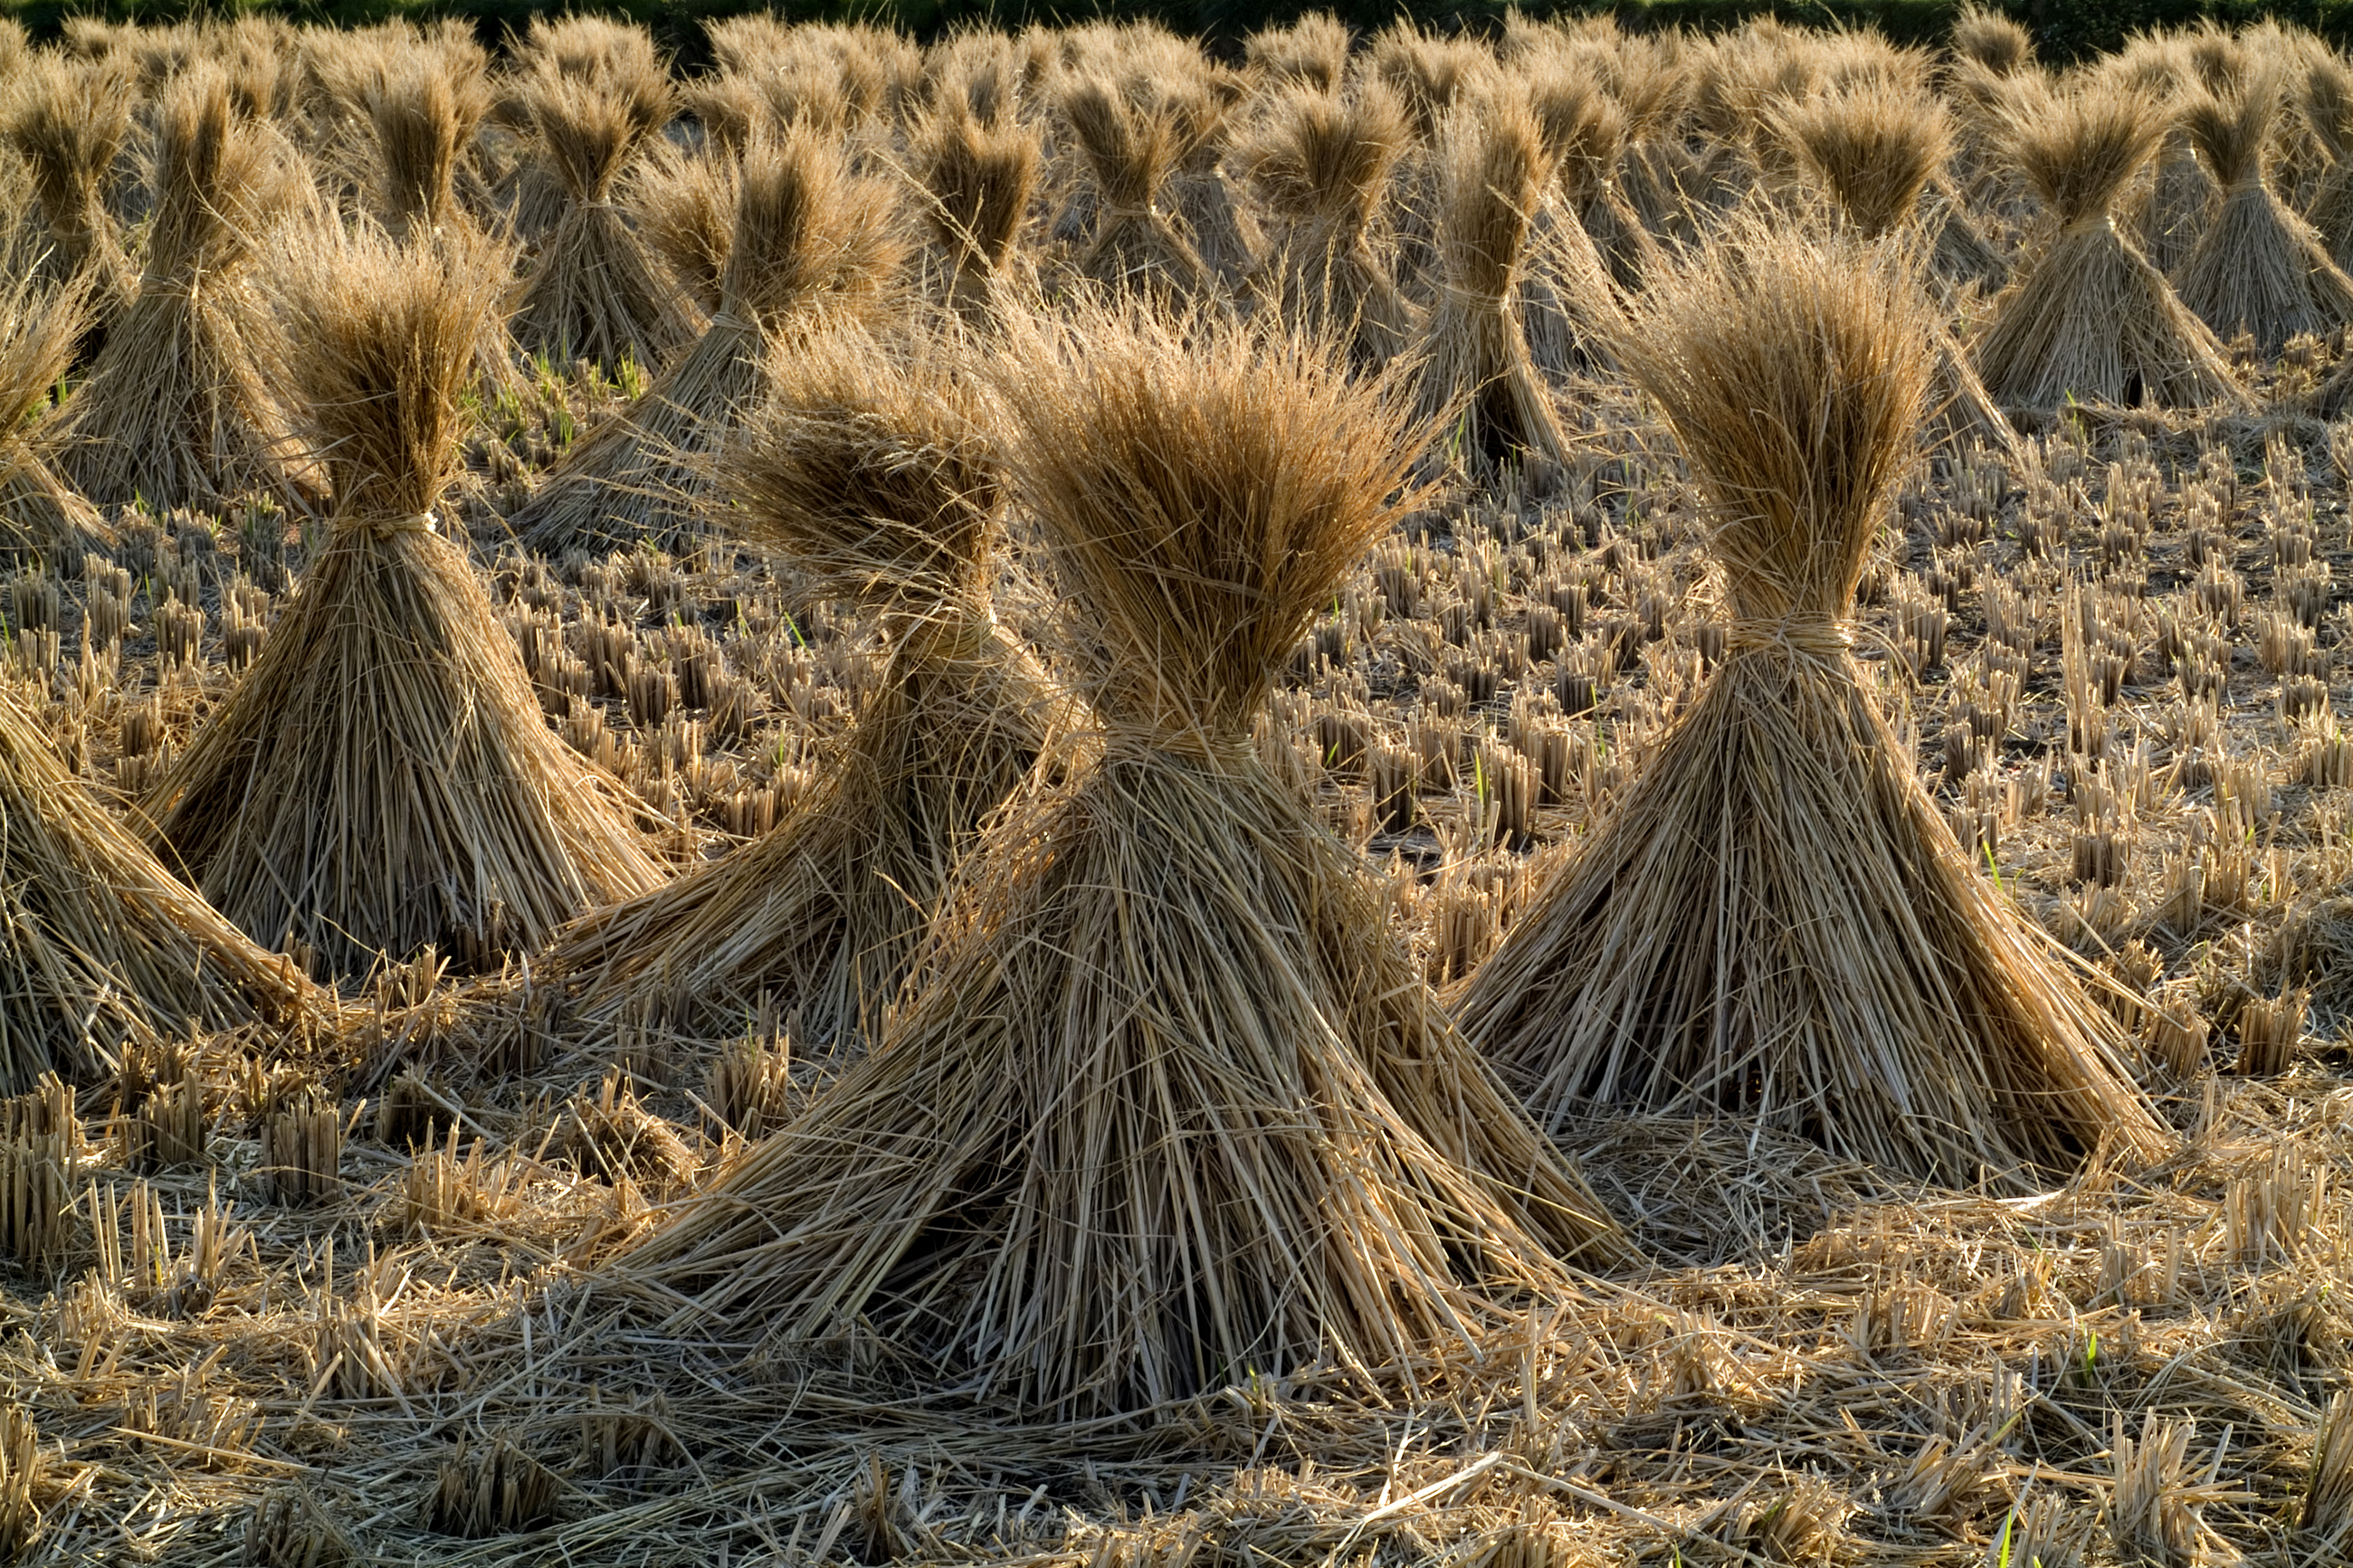 Fichier:Straw of the rice.08Oct9.jpg — Wikipédia